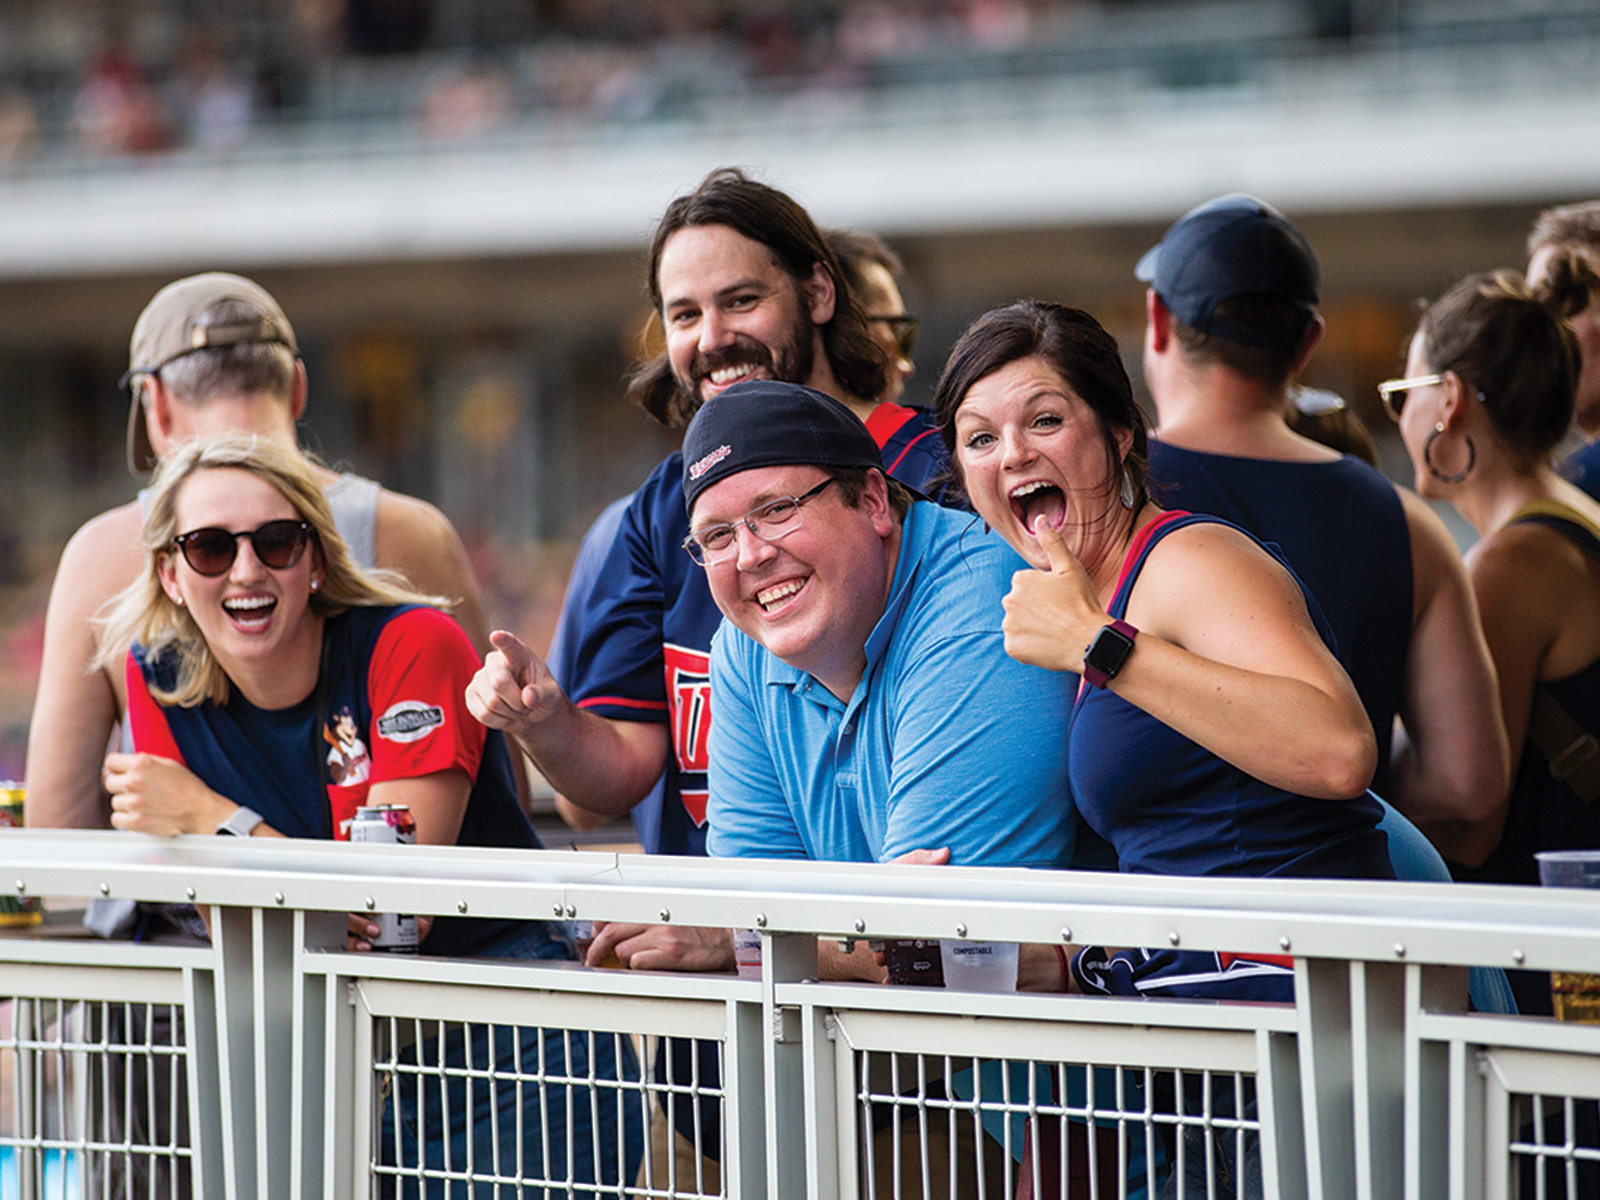 Fans at a Twins game enjoying themselves